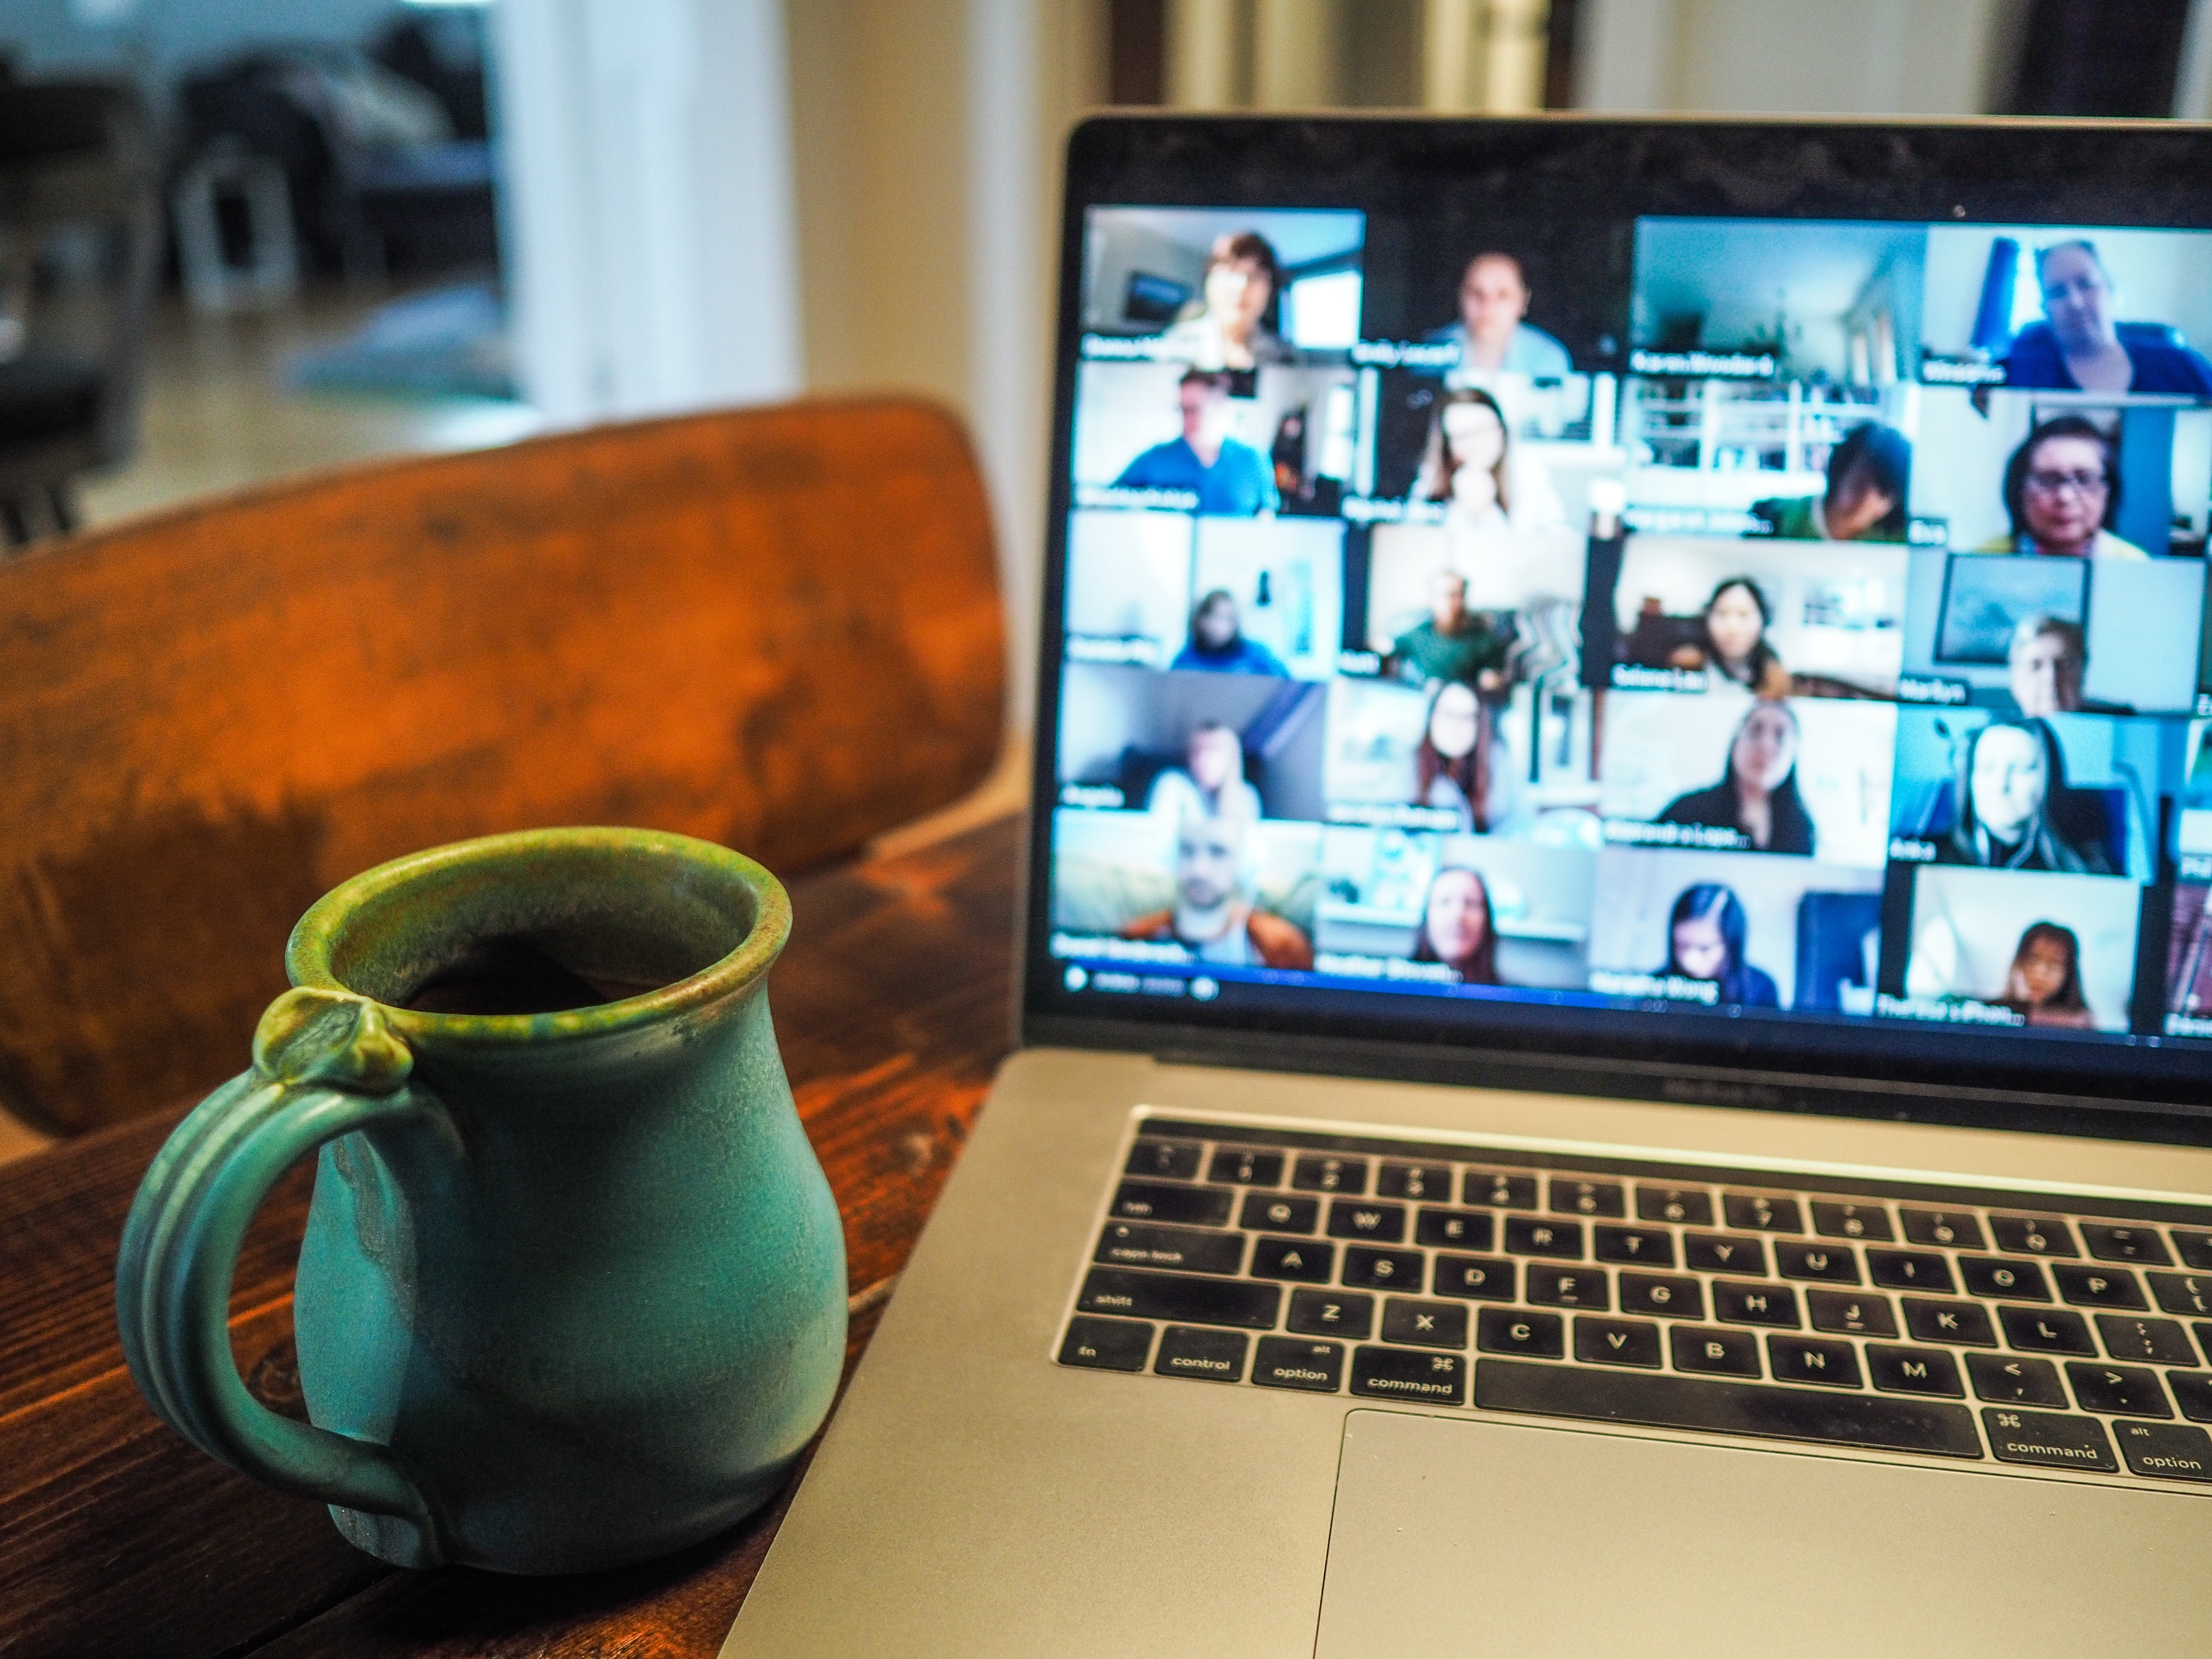 Video meeting on computer and coffee cup